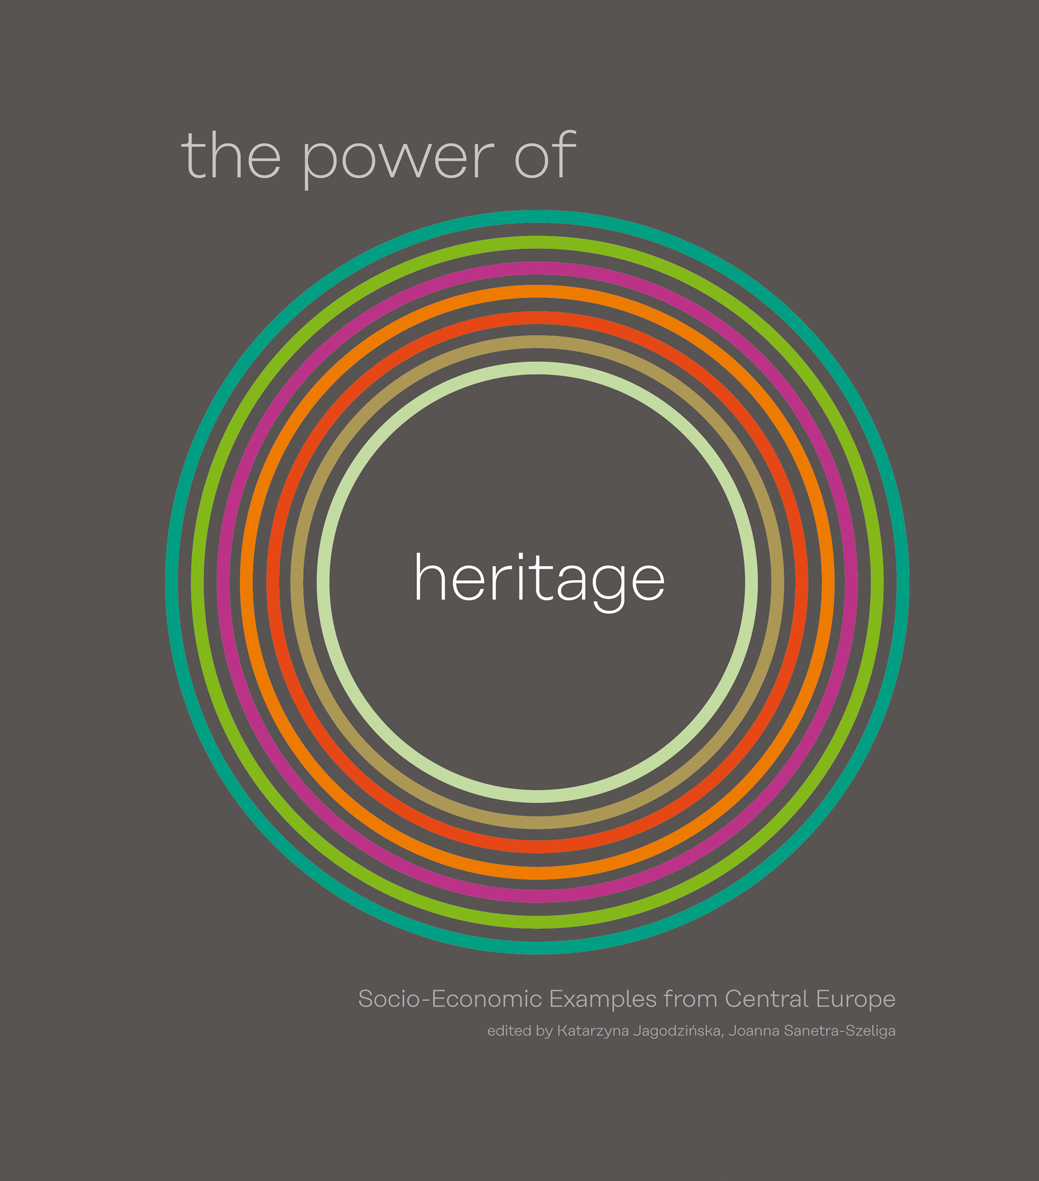 The Power of Heritage. Socio-Economic Examples from Central Europe